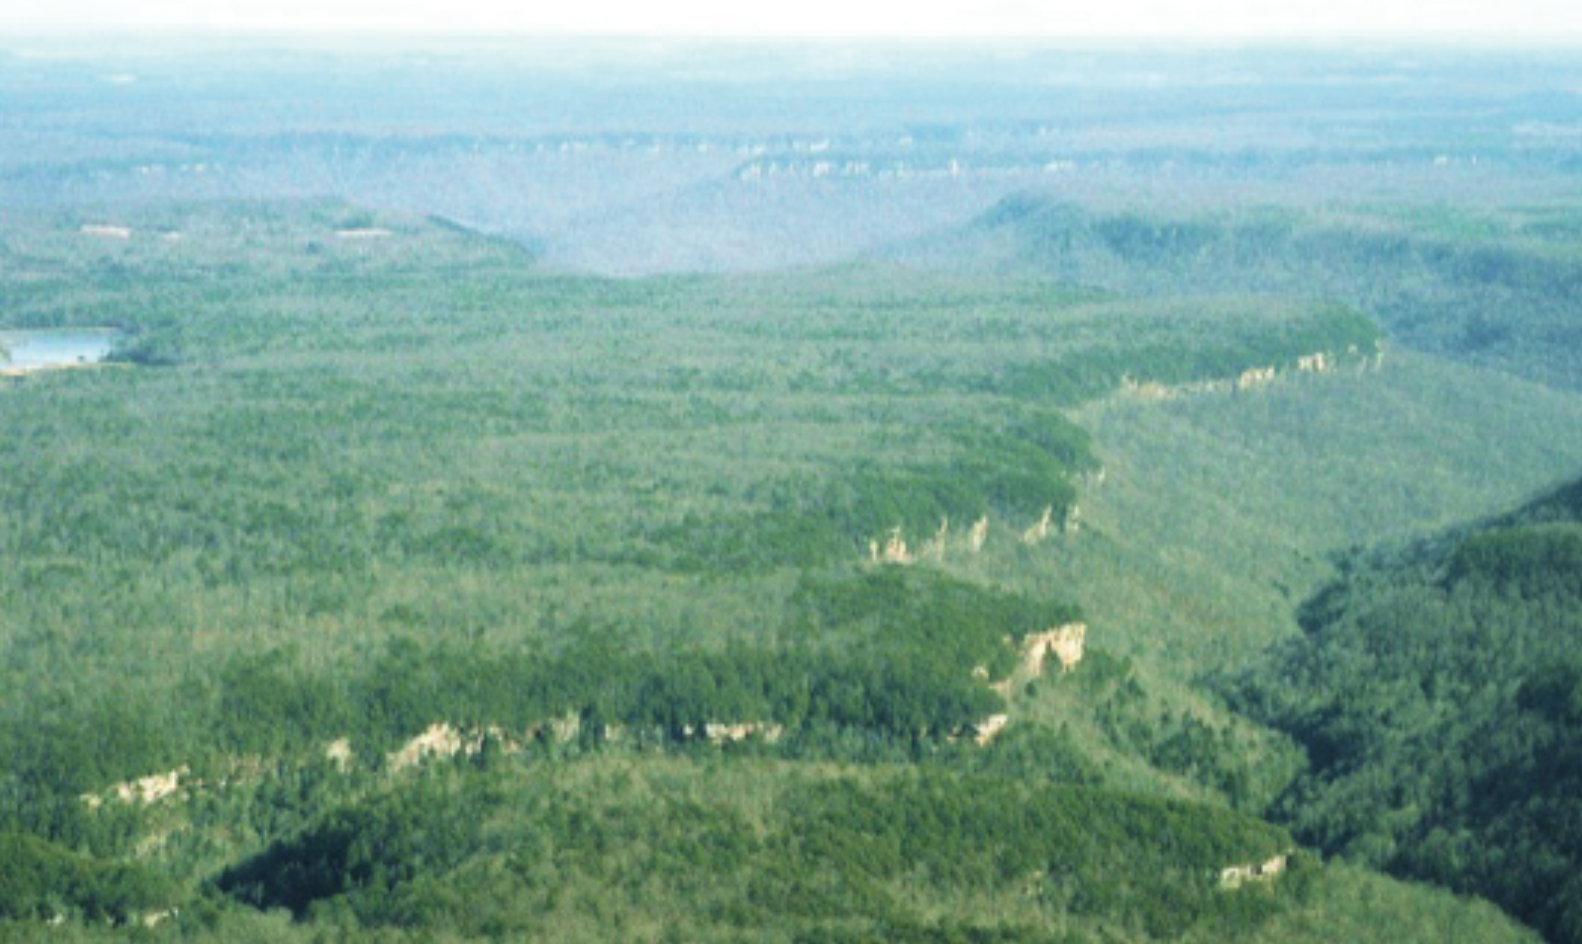 In some areas, large expanses of close-canopied forest that we know were open savannas historically can be restored with a combination of selective canopy thinning and prescribed burning. For example, the broad expanses on top of the Cumberland Plateau of Tennessee respond very well to thinning and burning and can be reverted to high quality shortleaf pine-post oak savanna.